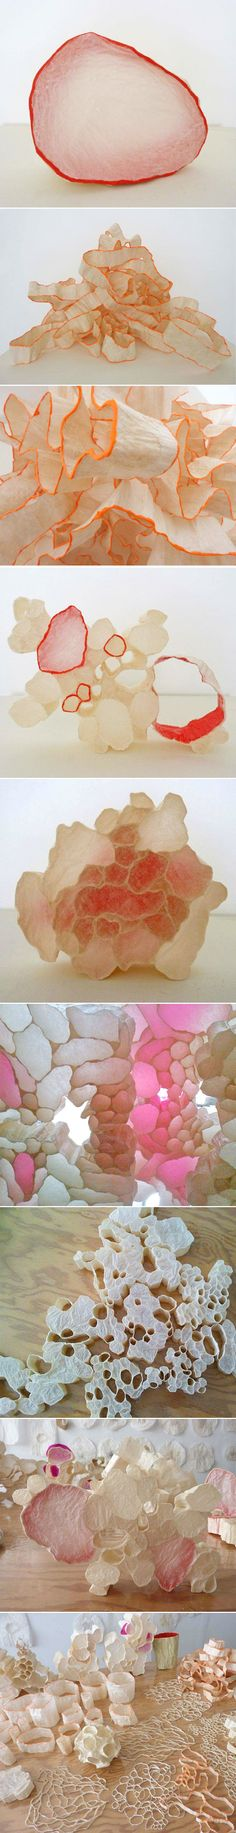 Sculptural work by San Francisco based artist Mary Button Durell - Tracing paper and wheat paste